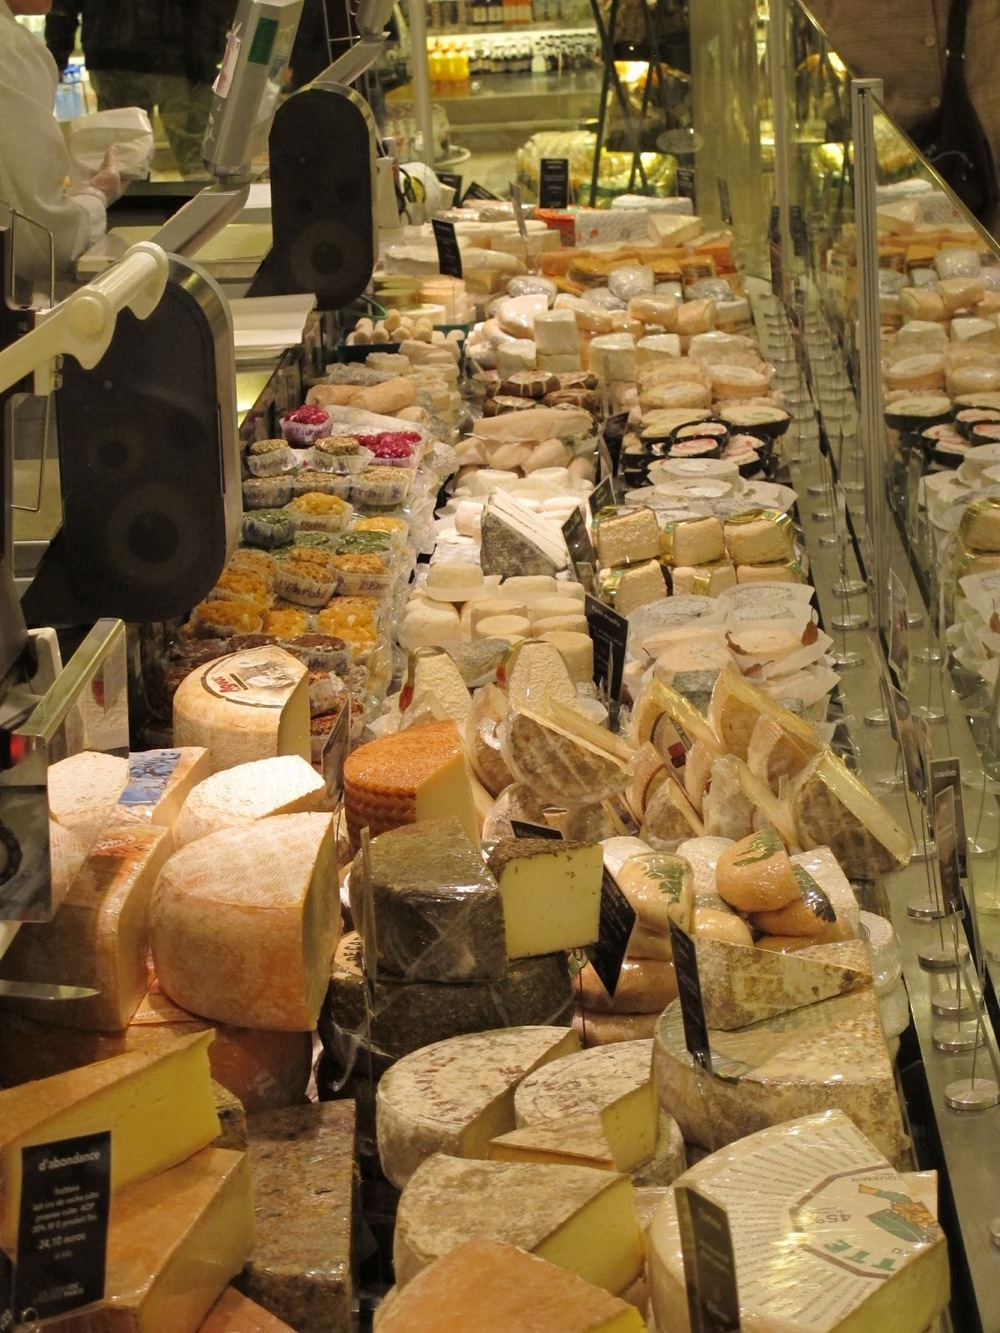 Food - Cheese IMG_9065.JPG